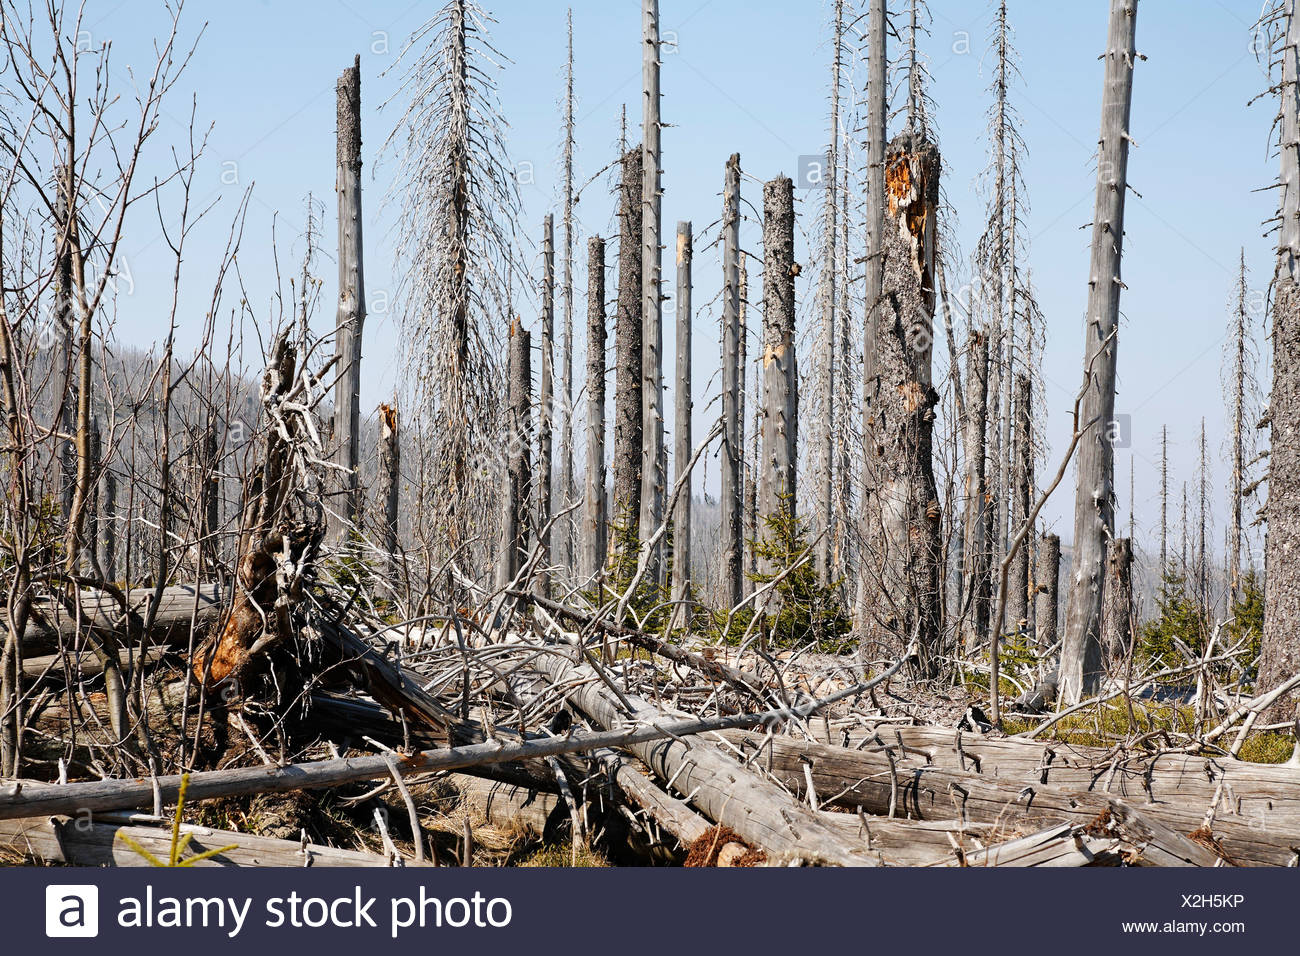 Forest with dead spruces, Bayerischer Wald National park, Lower Bavaria, Germany Stock Photo